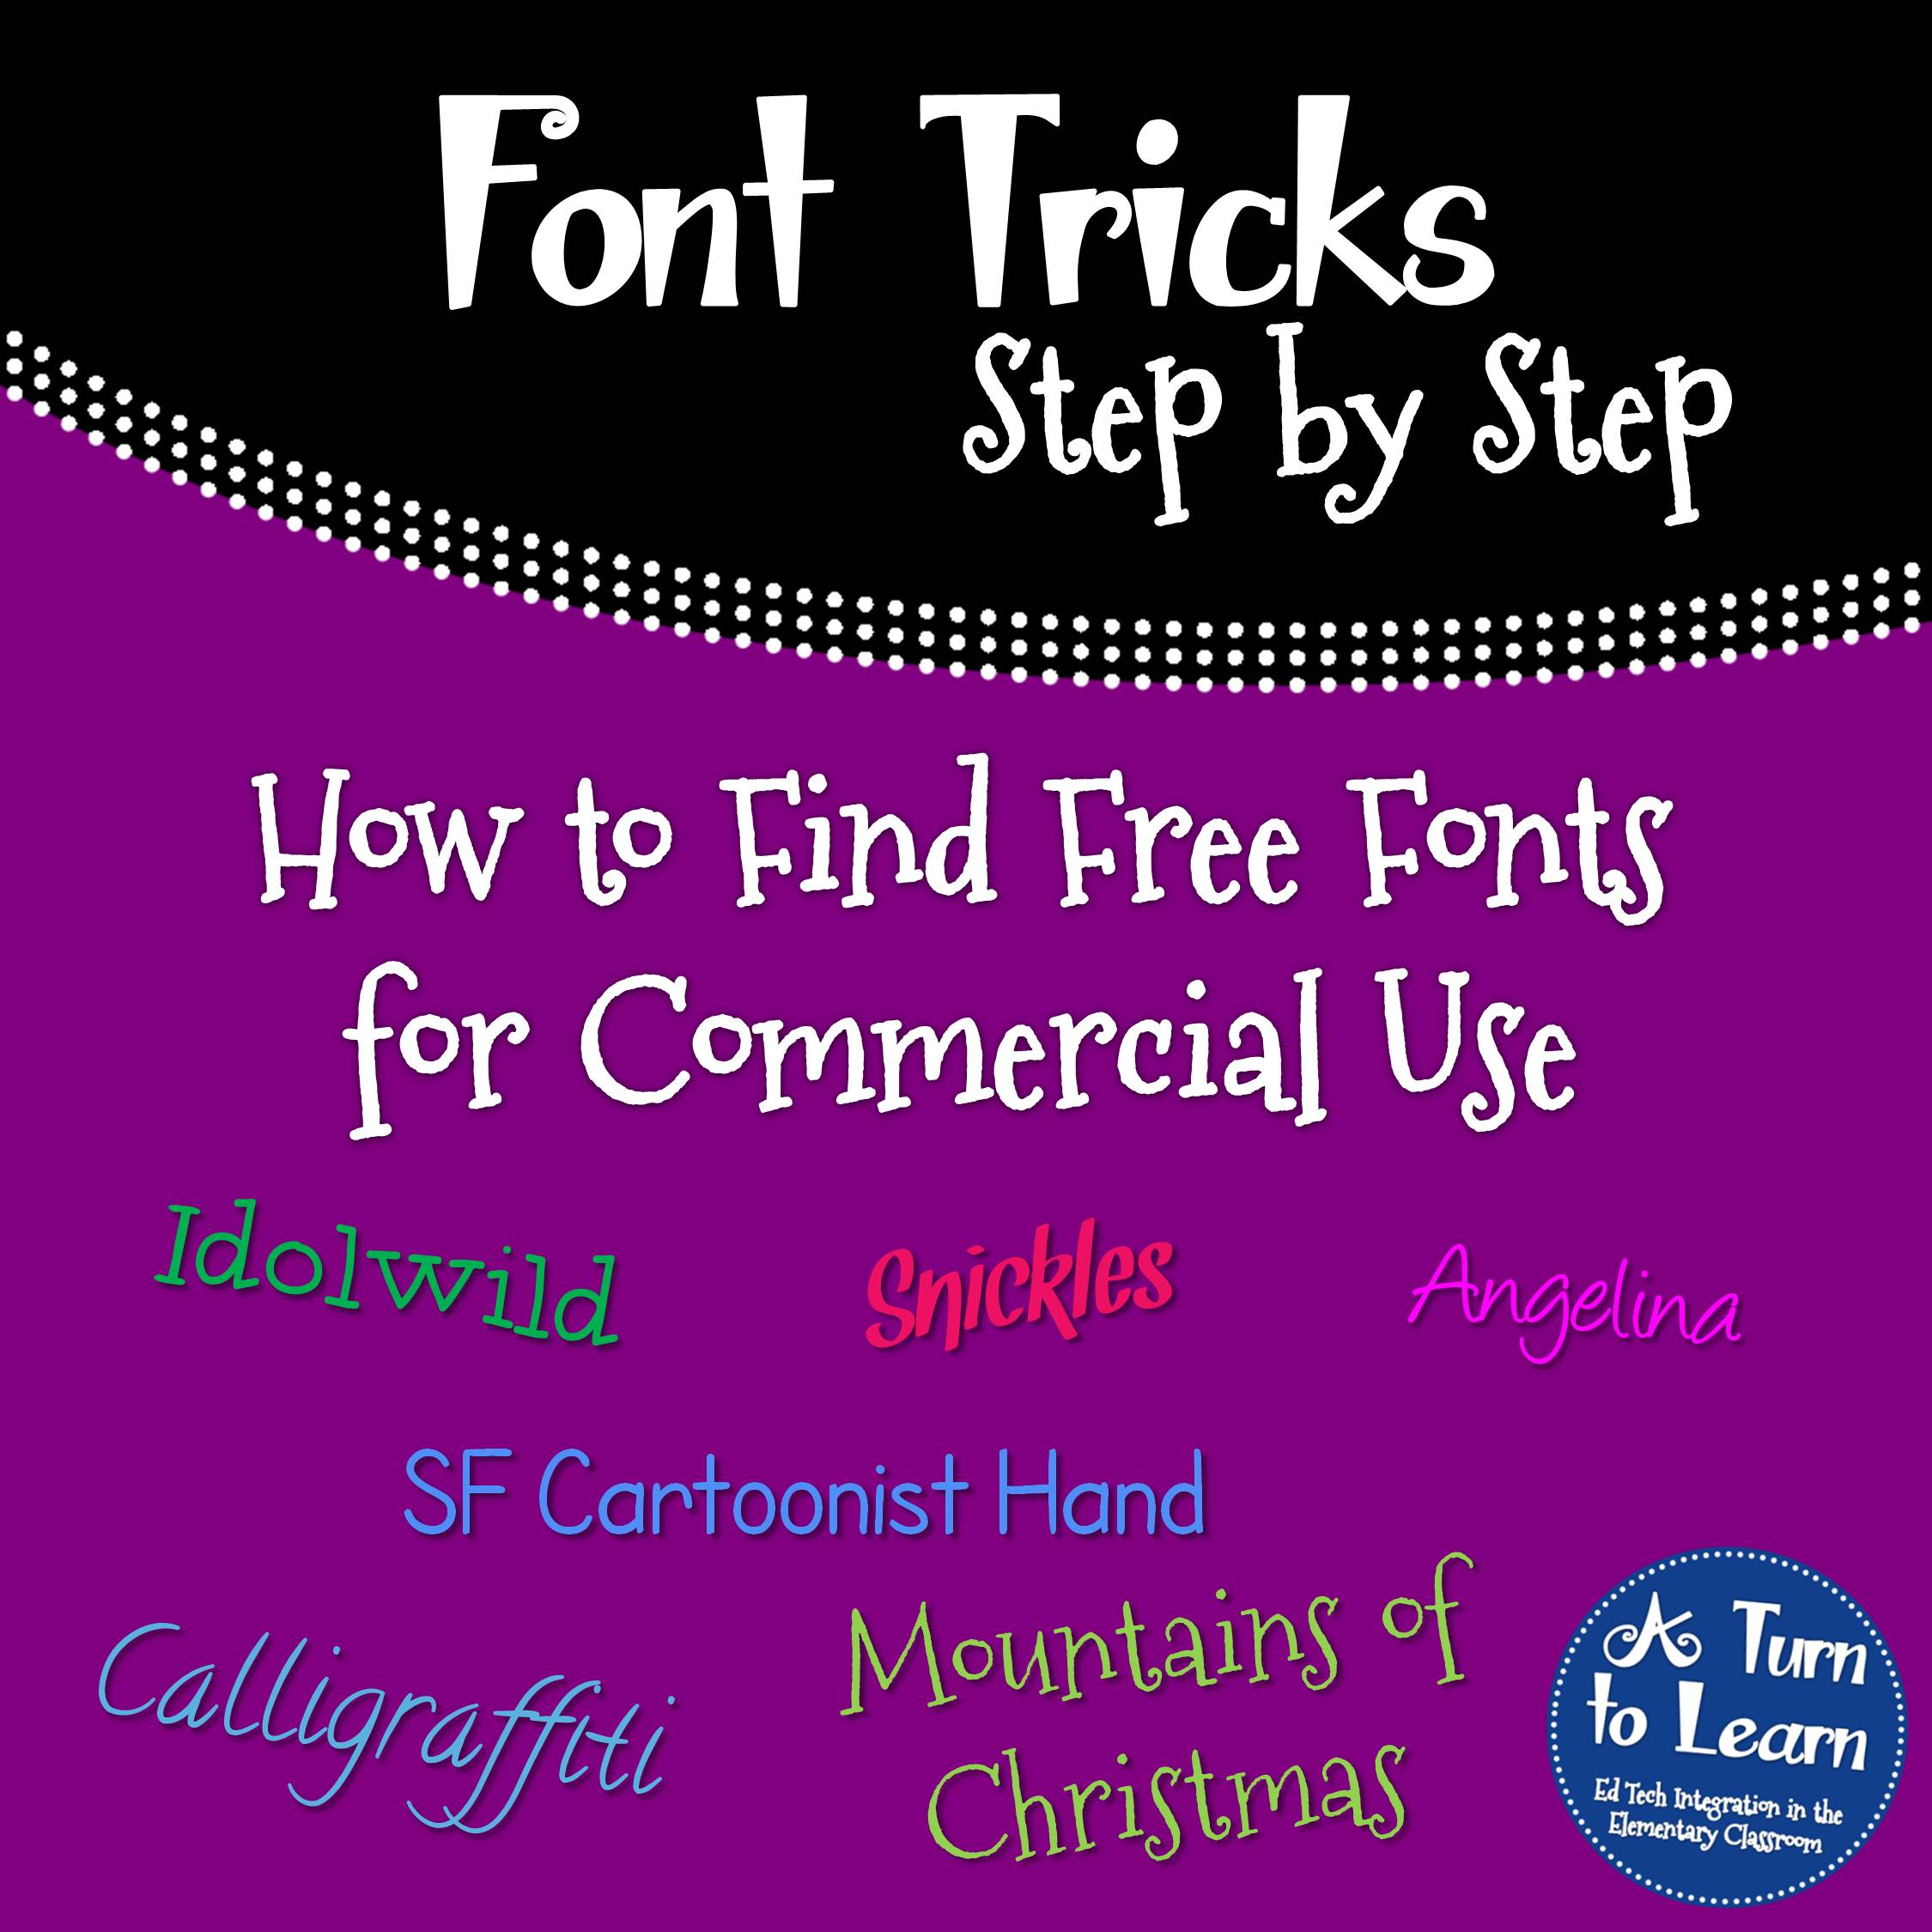 How to Find Free Fonts for Commercial Use